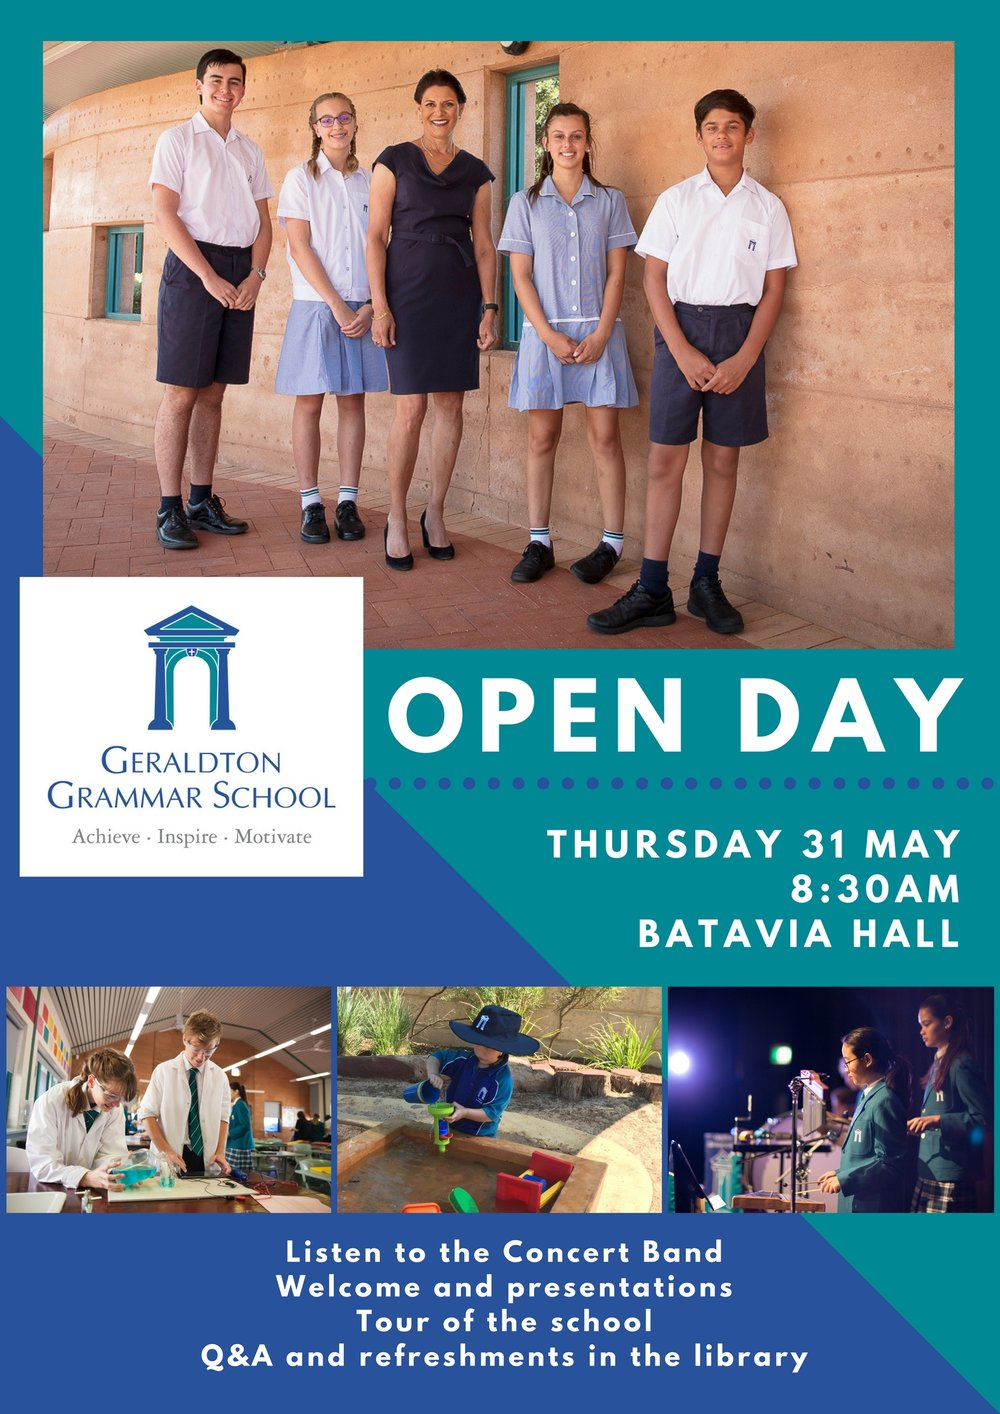 Open day poster updated 2018.jpg